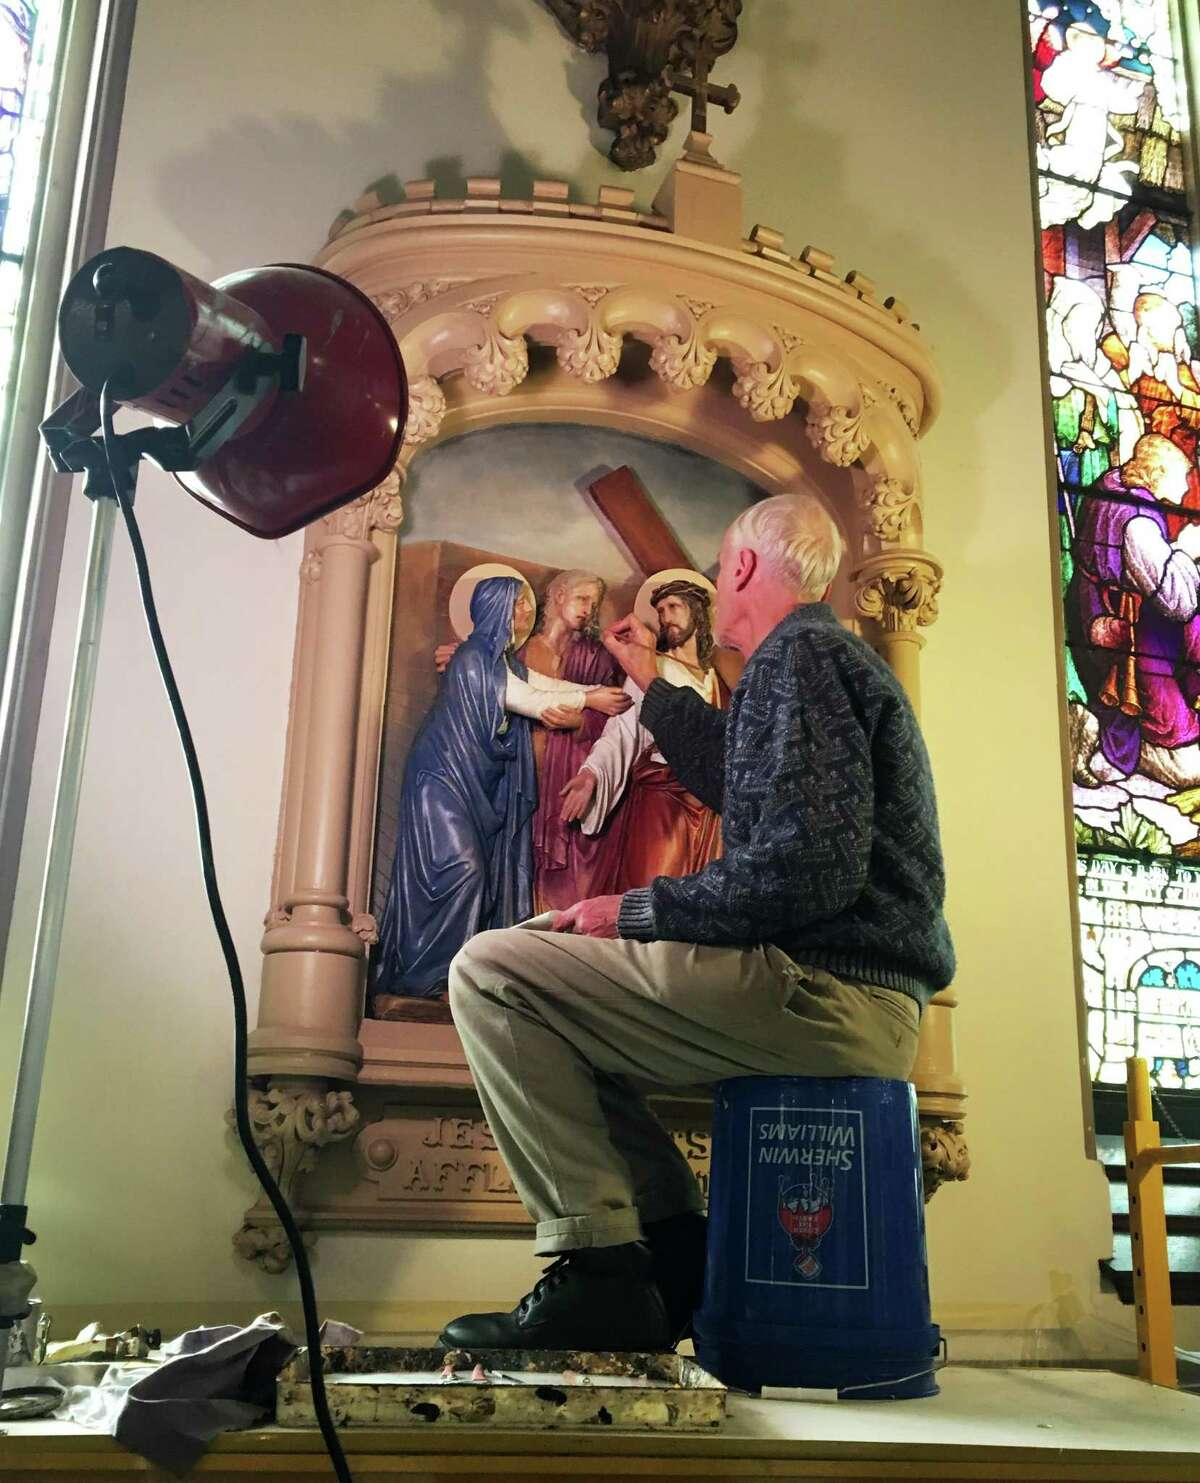 Henry Pospieszalski works on the the restoration of the Fourth Station, Jesus meets his mother. The 14 Stations of the Cross on the walls of the Church of Assumption in Ansonia, Conn. have been meticulously restored to their original luster.